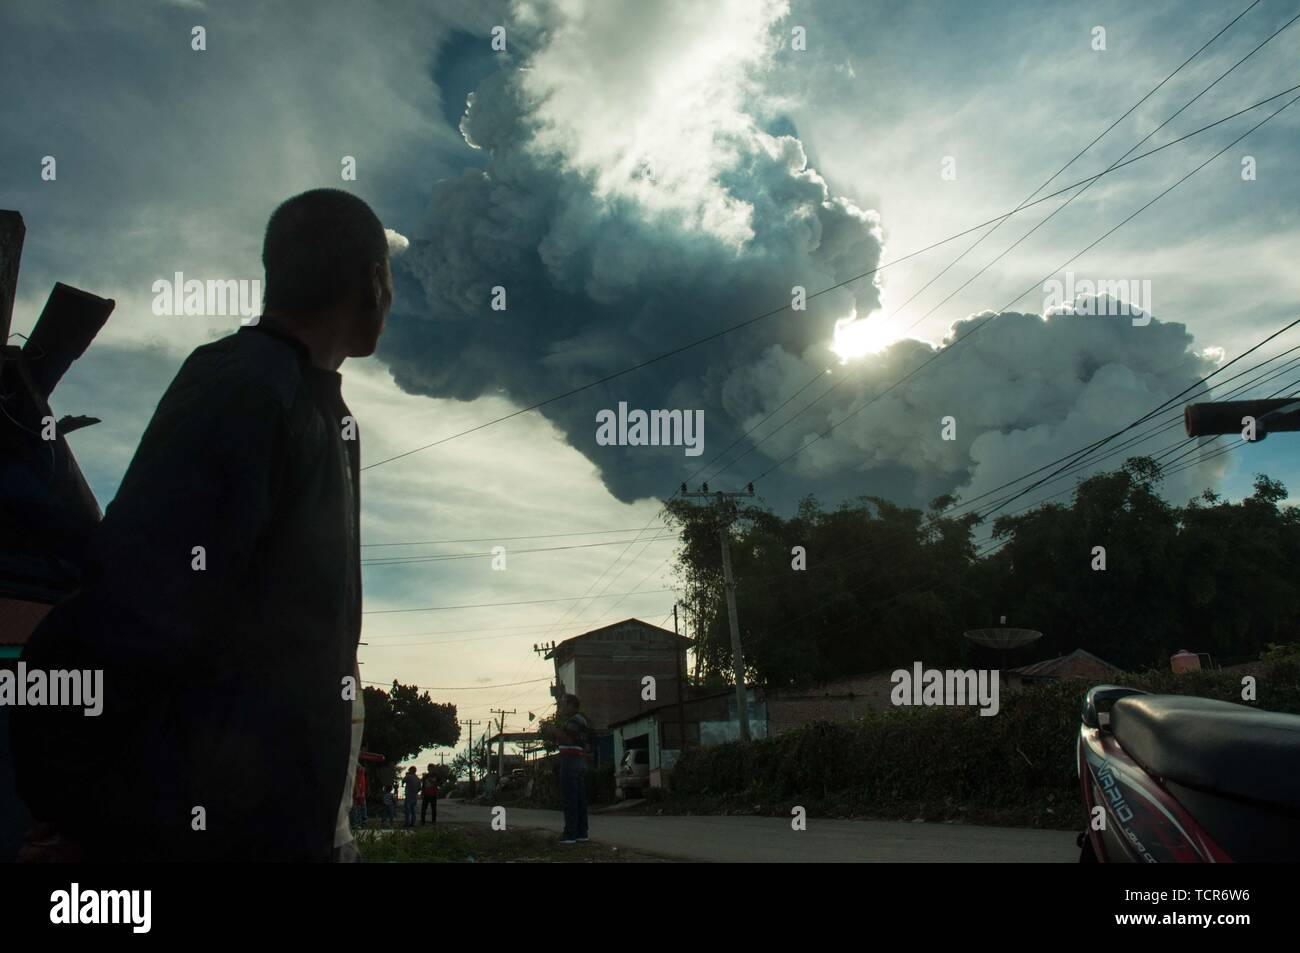 Sumatra, Indonesia. 09th June, 2019. The eruption of Mt. Sinabung, North Sumatra on June 9, 2019 at 16:28 with the ash column height observed ± 7,000 m above the peak (± 9,460 m above sea level). The ash column was observed to be black with thick intensity leaning southward. Seen from kabanjahe city. 'There was a hot cloud in the 3.5 km southeast and 3 km south and a roar came to the volcano observation post of Sinabung Currently Mount Sinabung is in Status * Level III (Standby)' Said vulcano officer guard from radio communication. Credit: Sabirin Manurung/Pacific Press/Alamy Live News Credit: - Stock Image